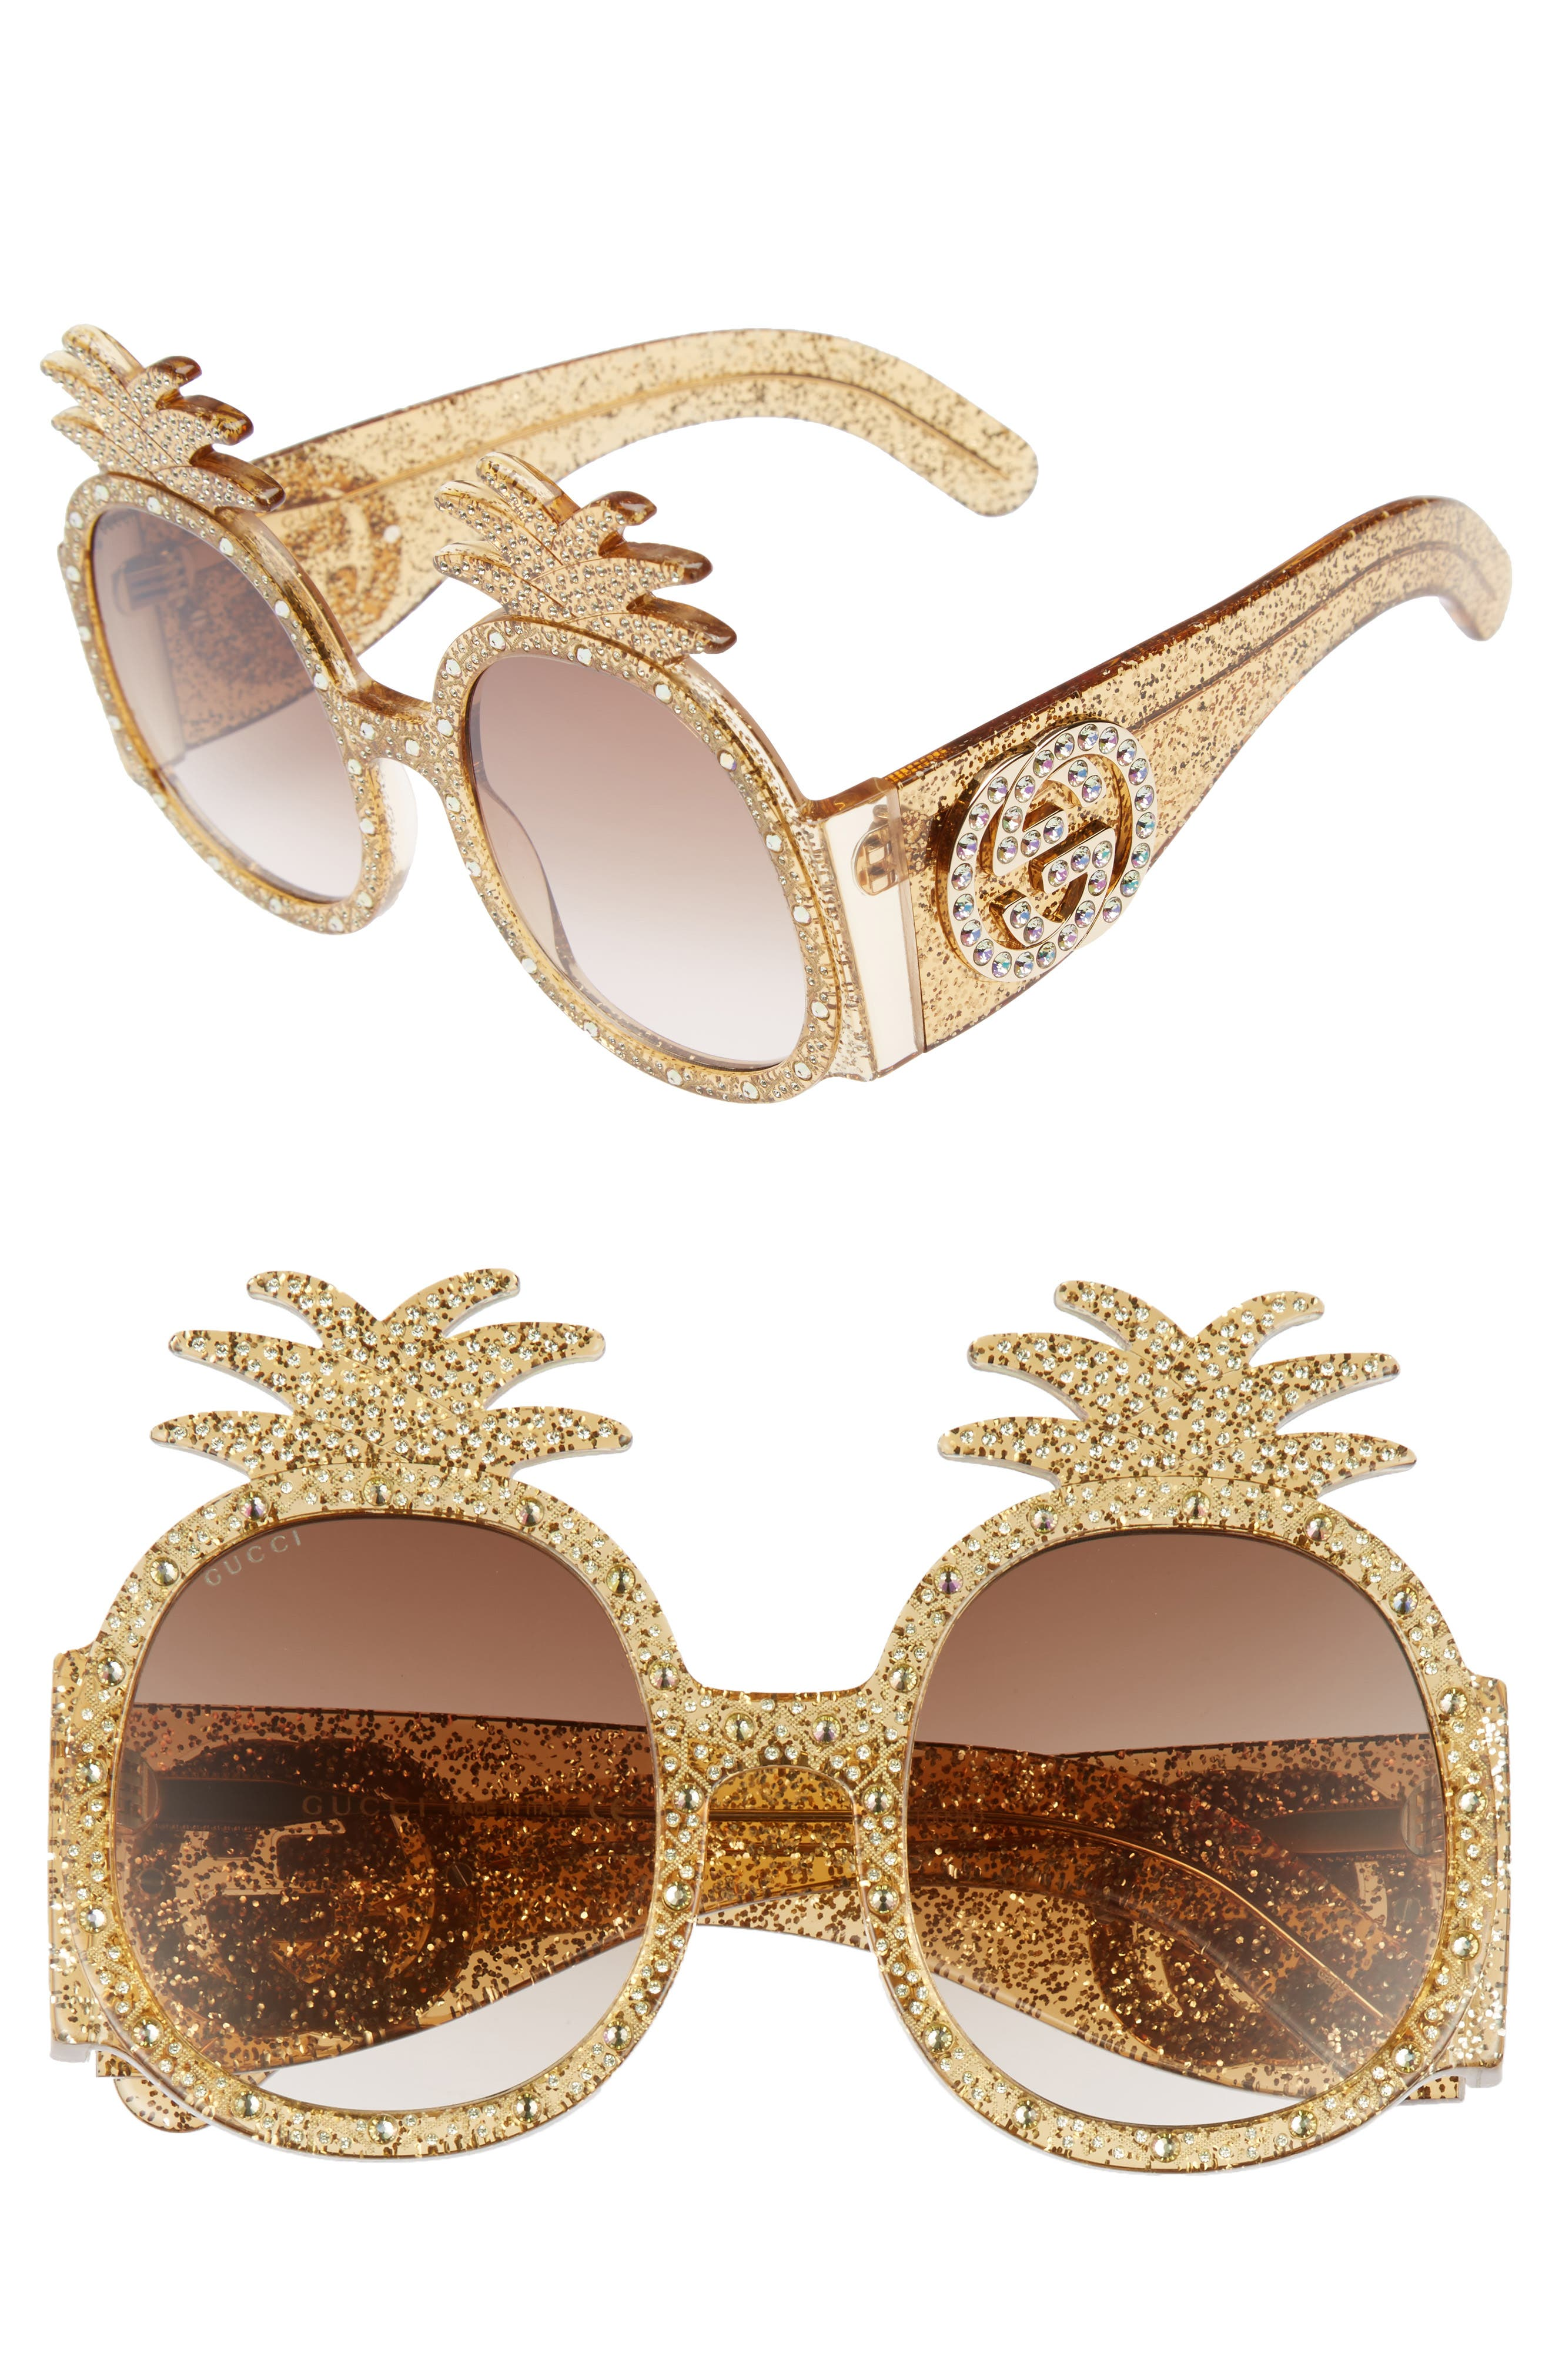 53mm Pineapple Sunglasses,                         Main,                         color, Gold